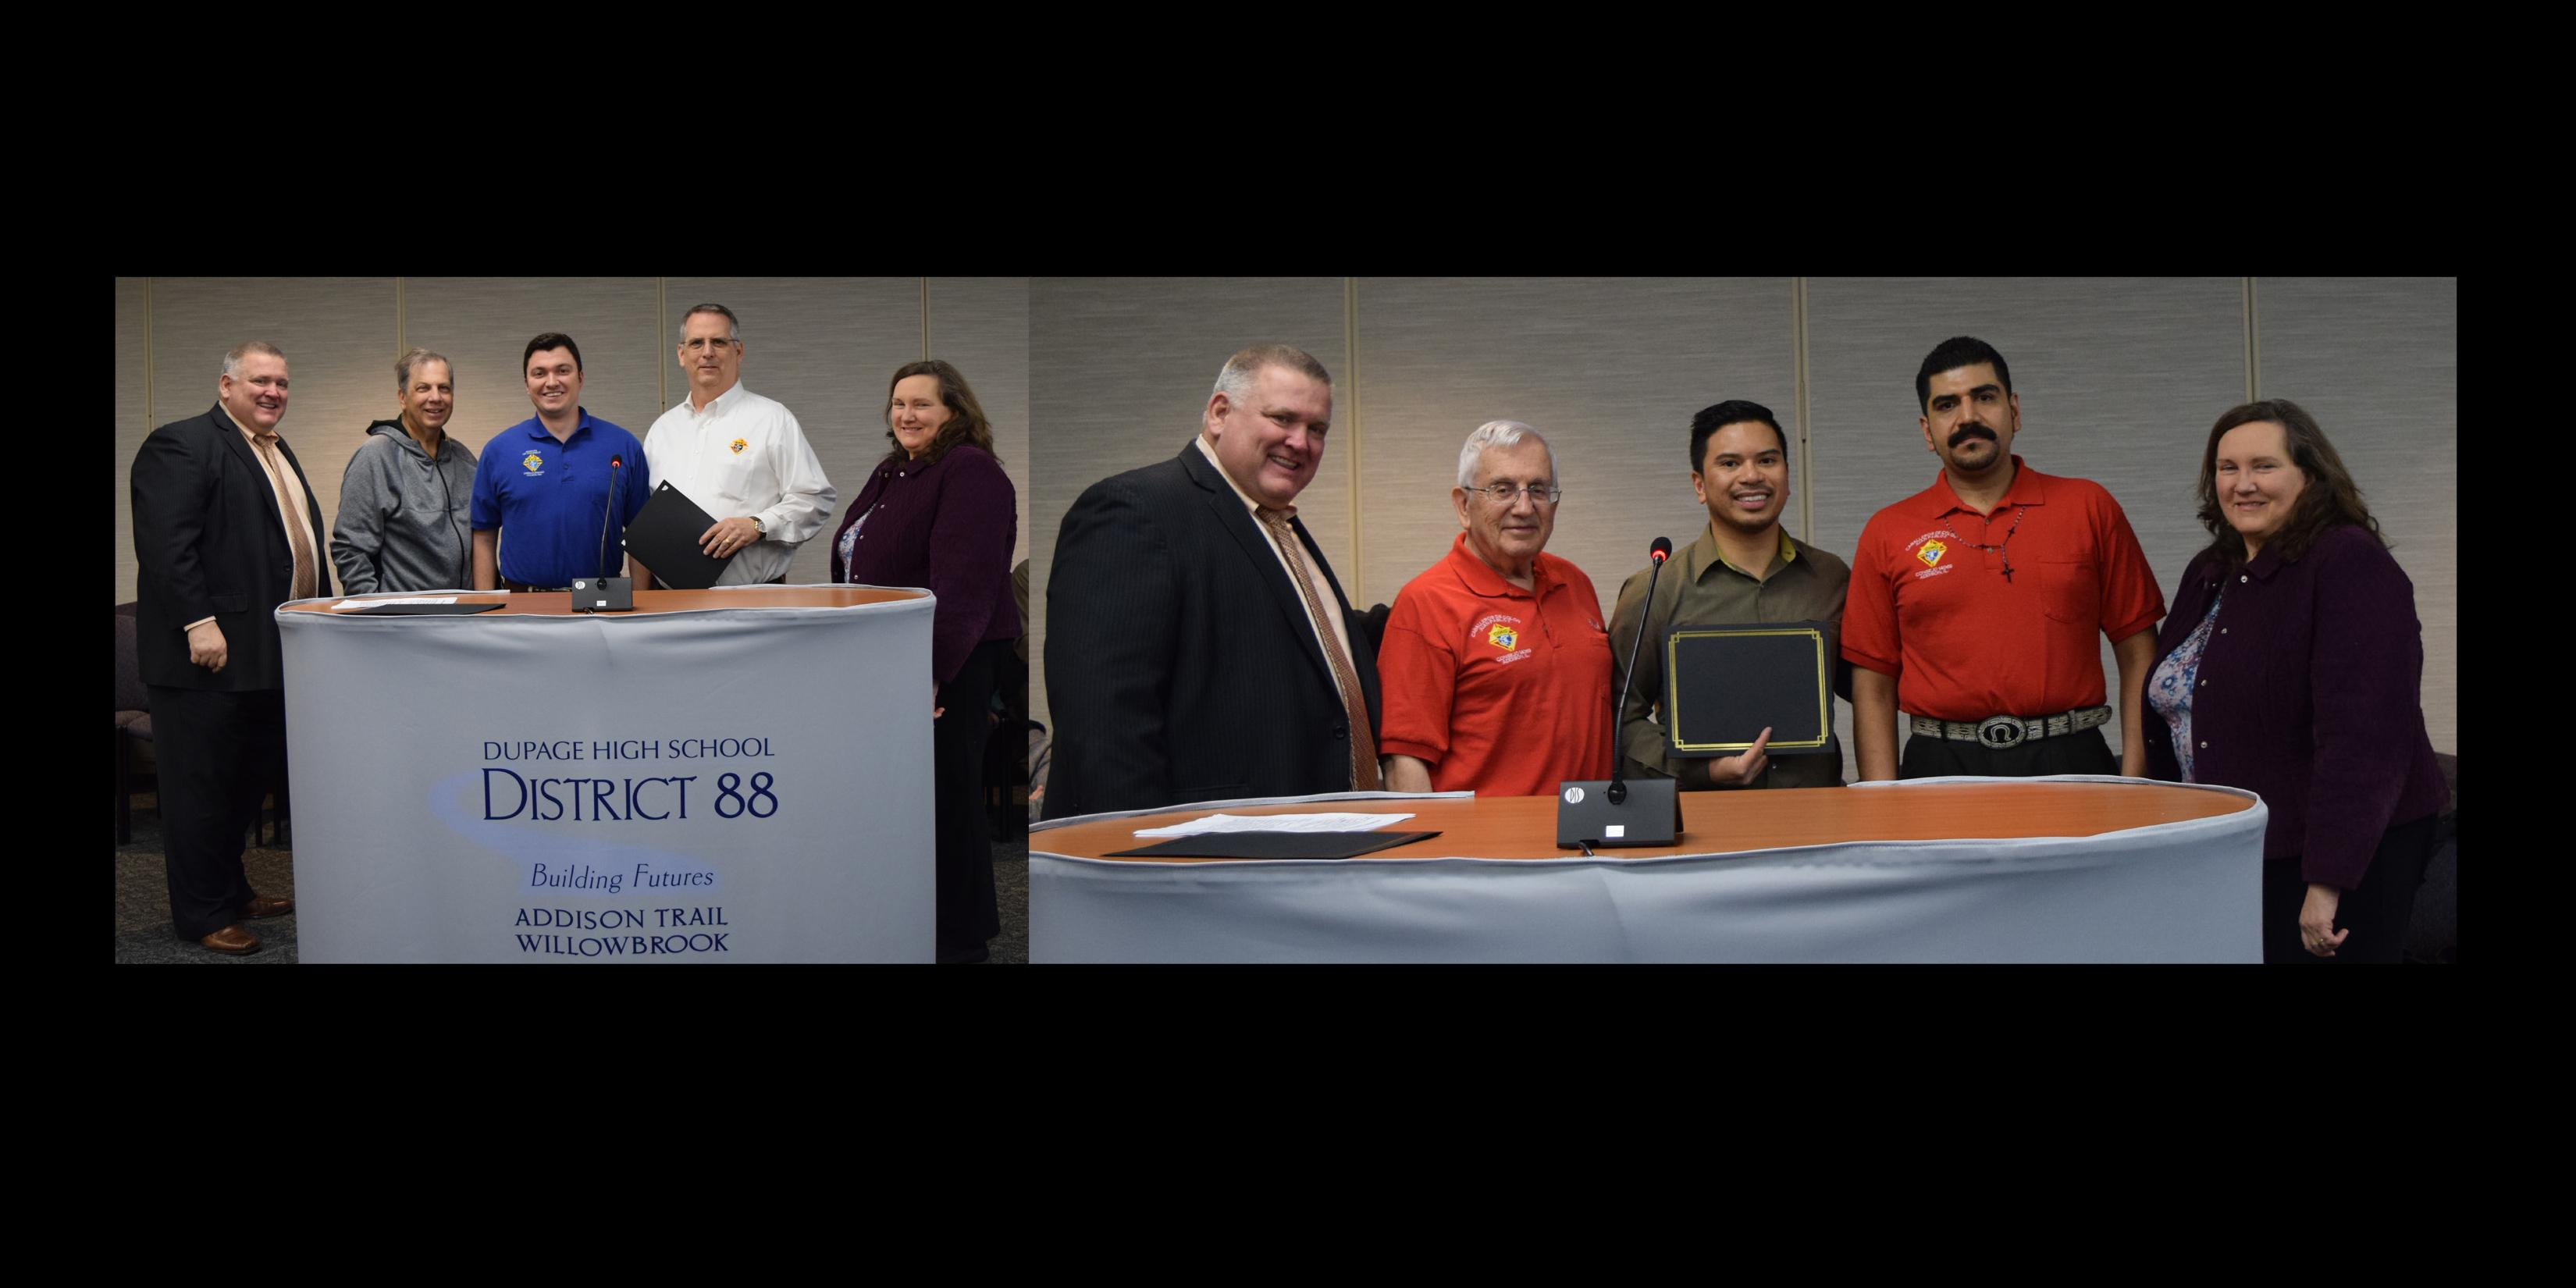 District 88 Board of Education recognizes three Business Partners